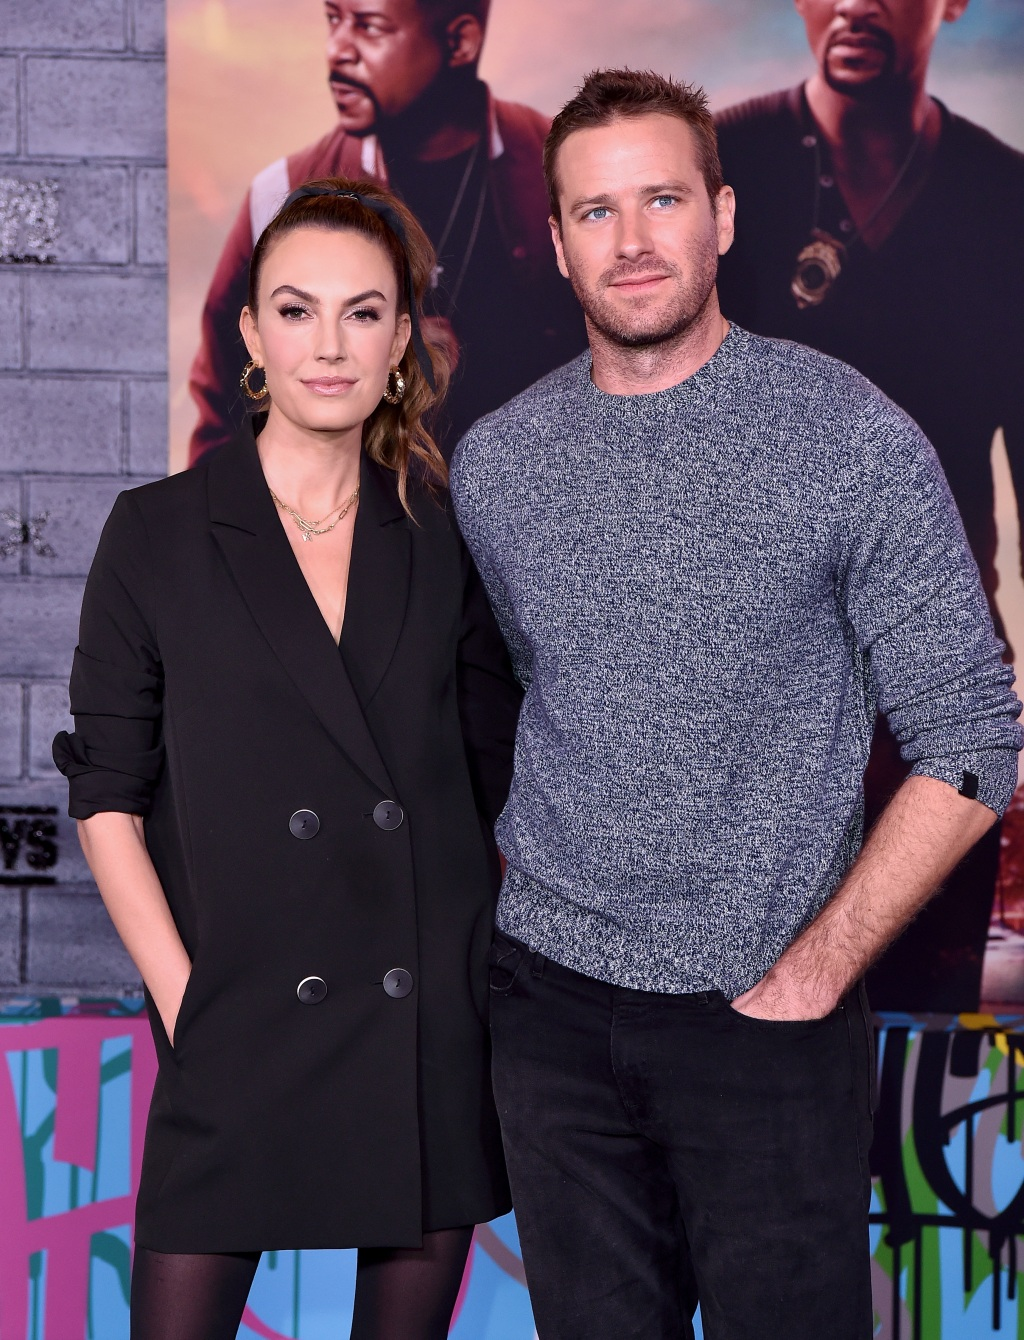 armie hammer wife allegations